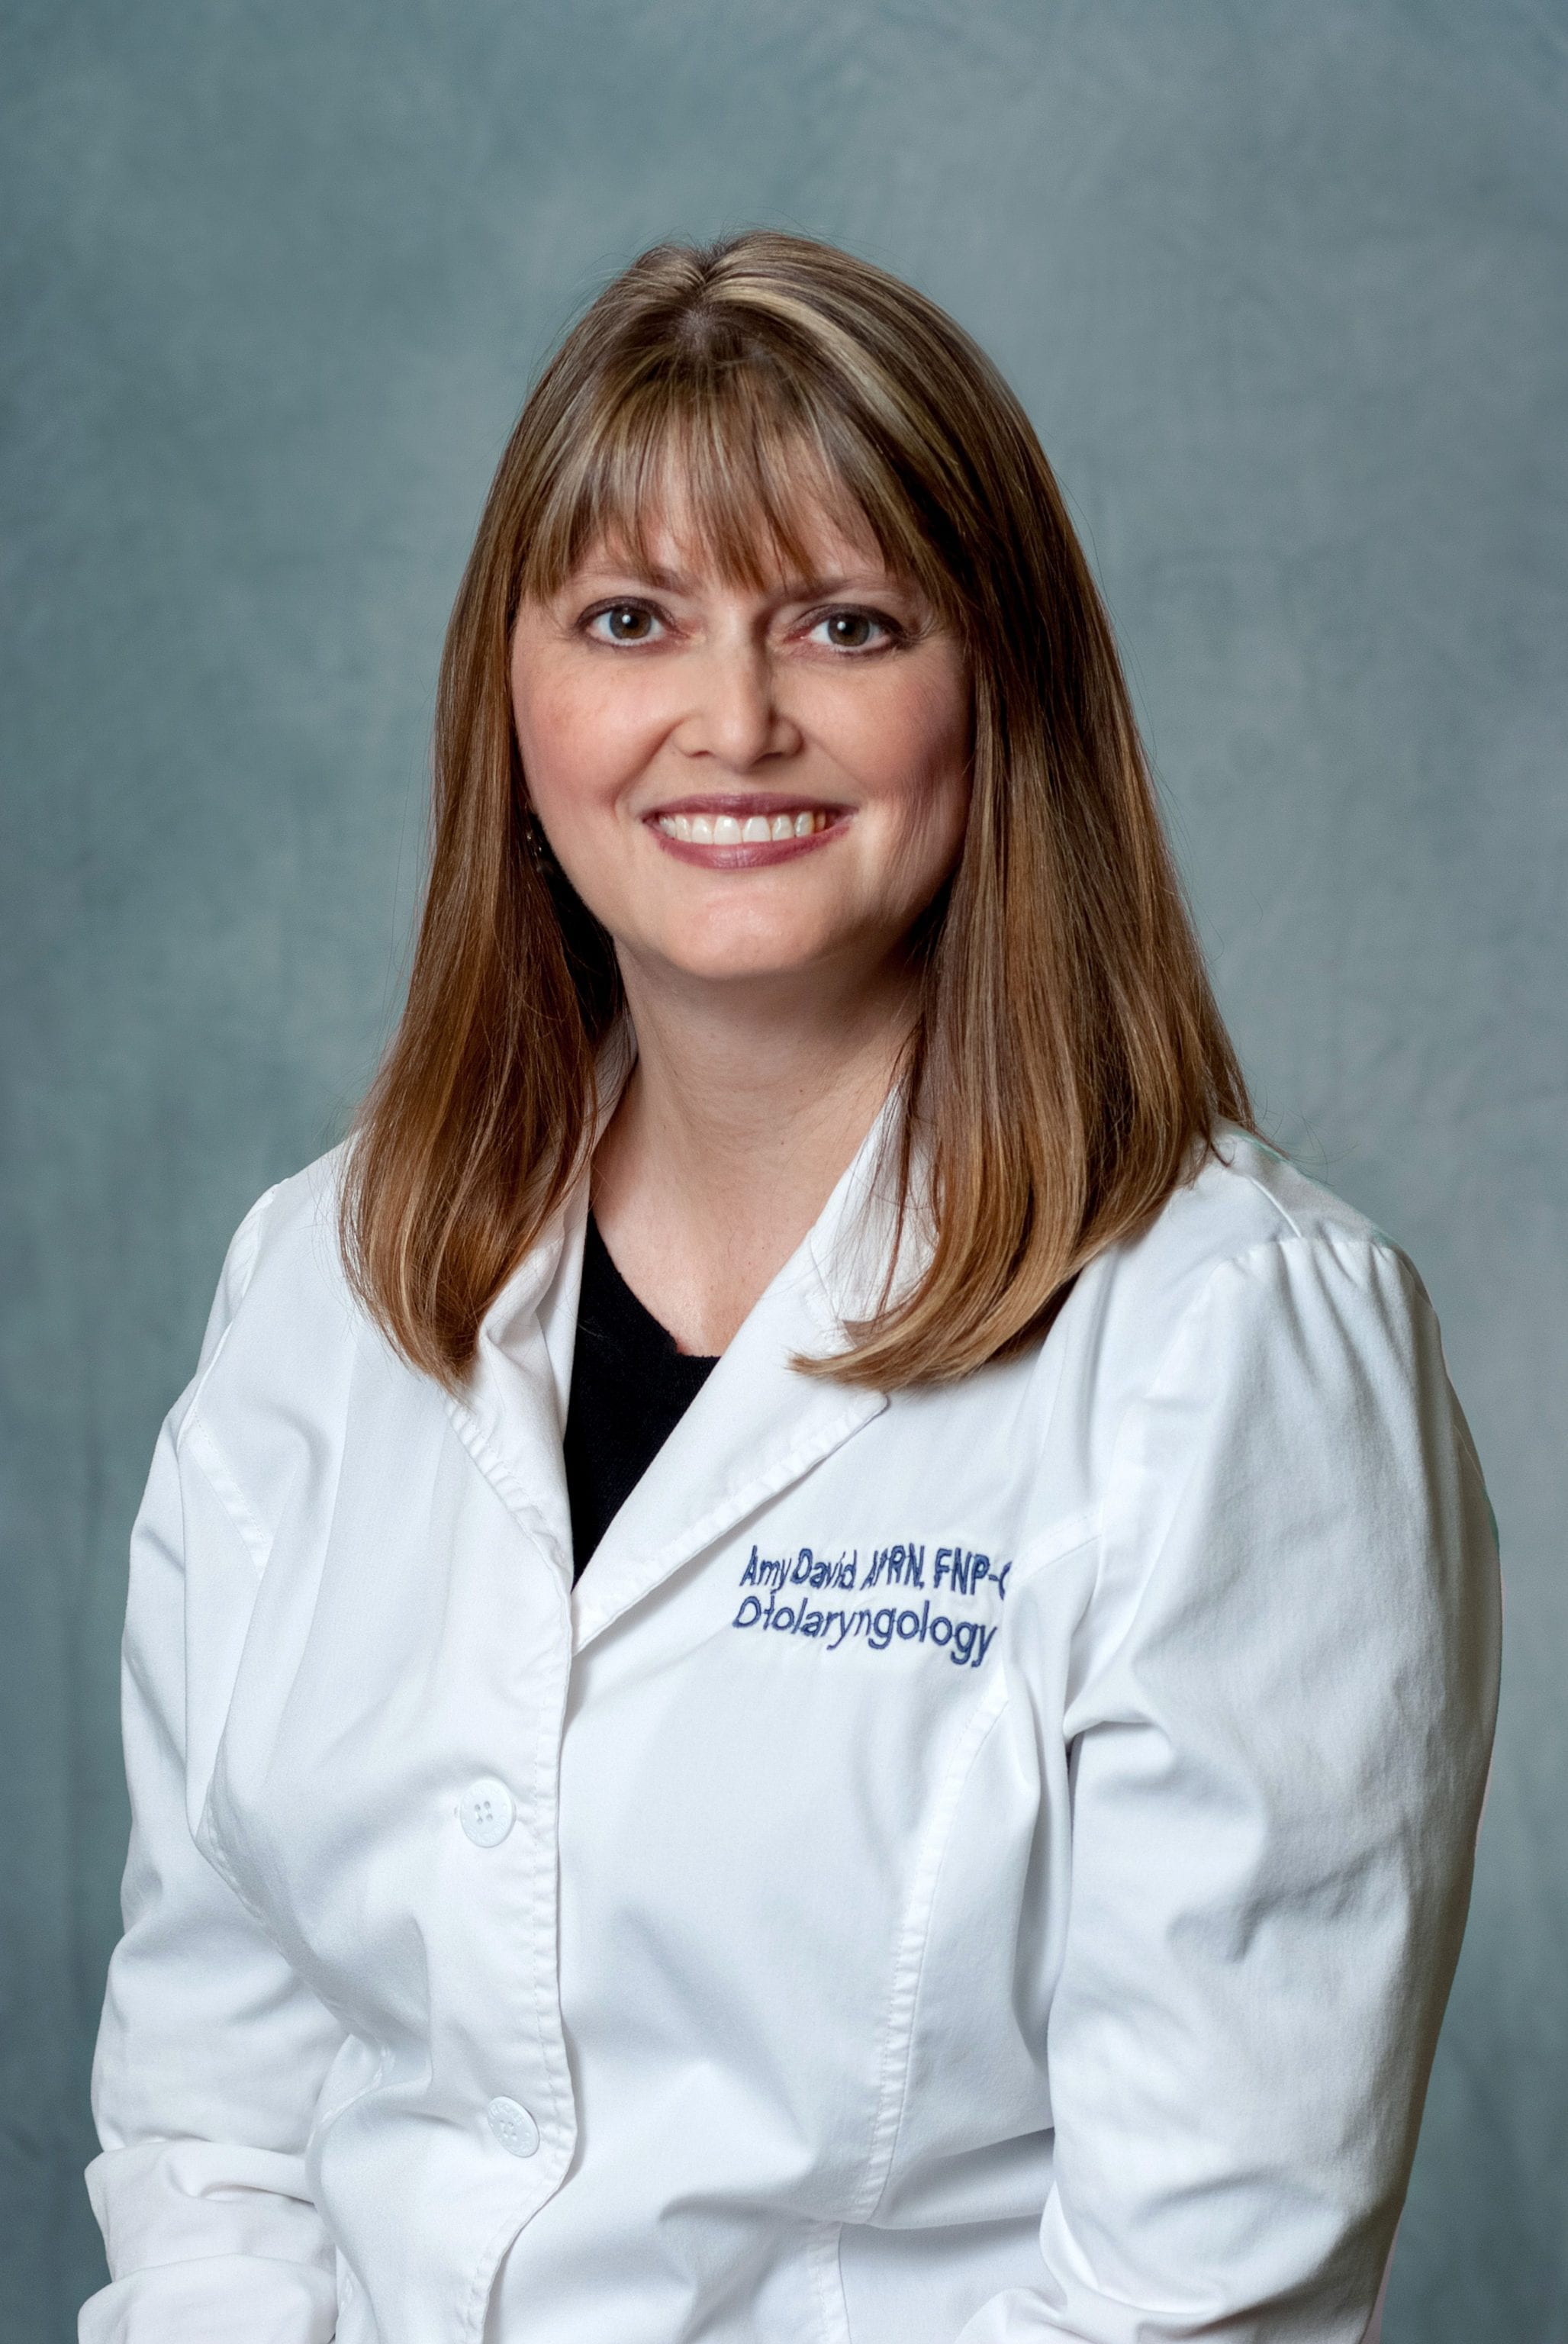 Amy David, MSN, APRN, FNP-C, CORLN : Family Nurse Practitioner